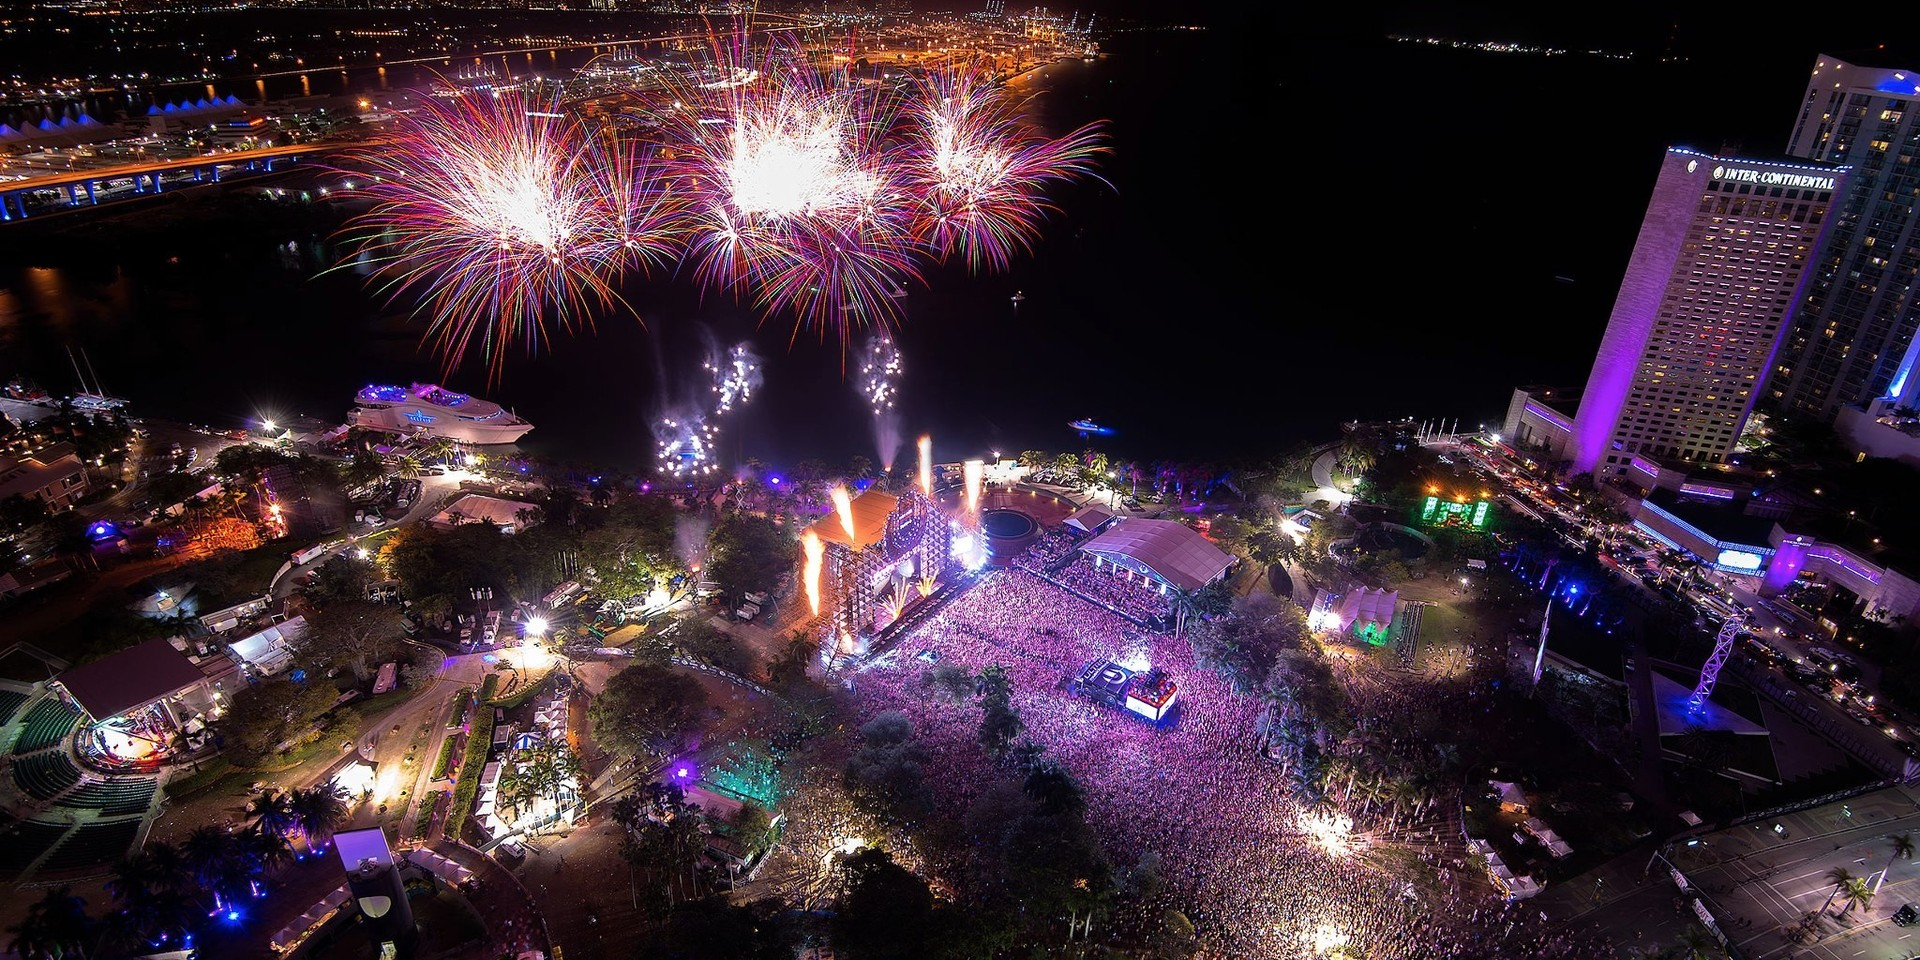 Ultra Worldwide will run 8 shows within 11 days in Asia this September